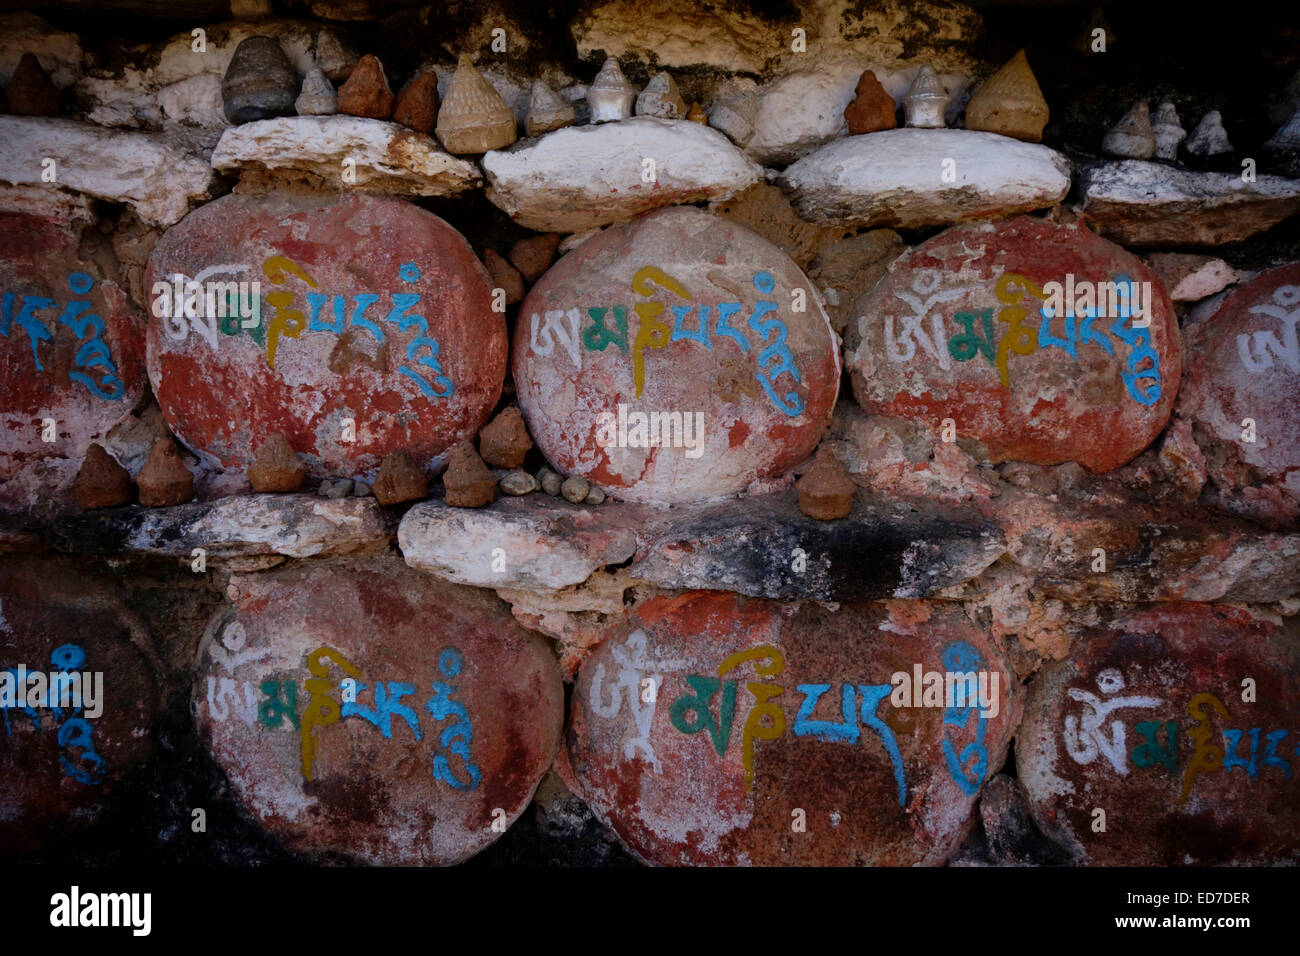 'Om mani padme' Tibetan mantra inscription on stone in front of the Buddhist Kurjey Lhakhang monastery which - Stock Image